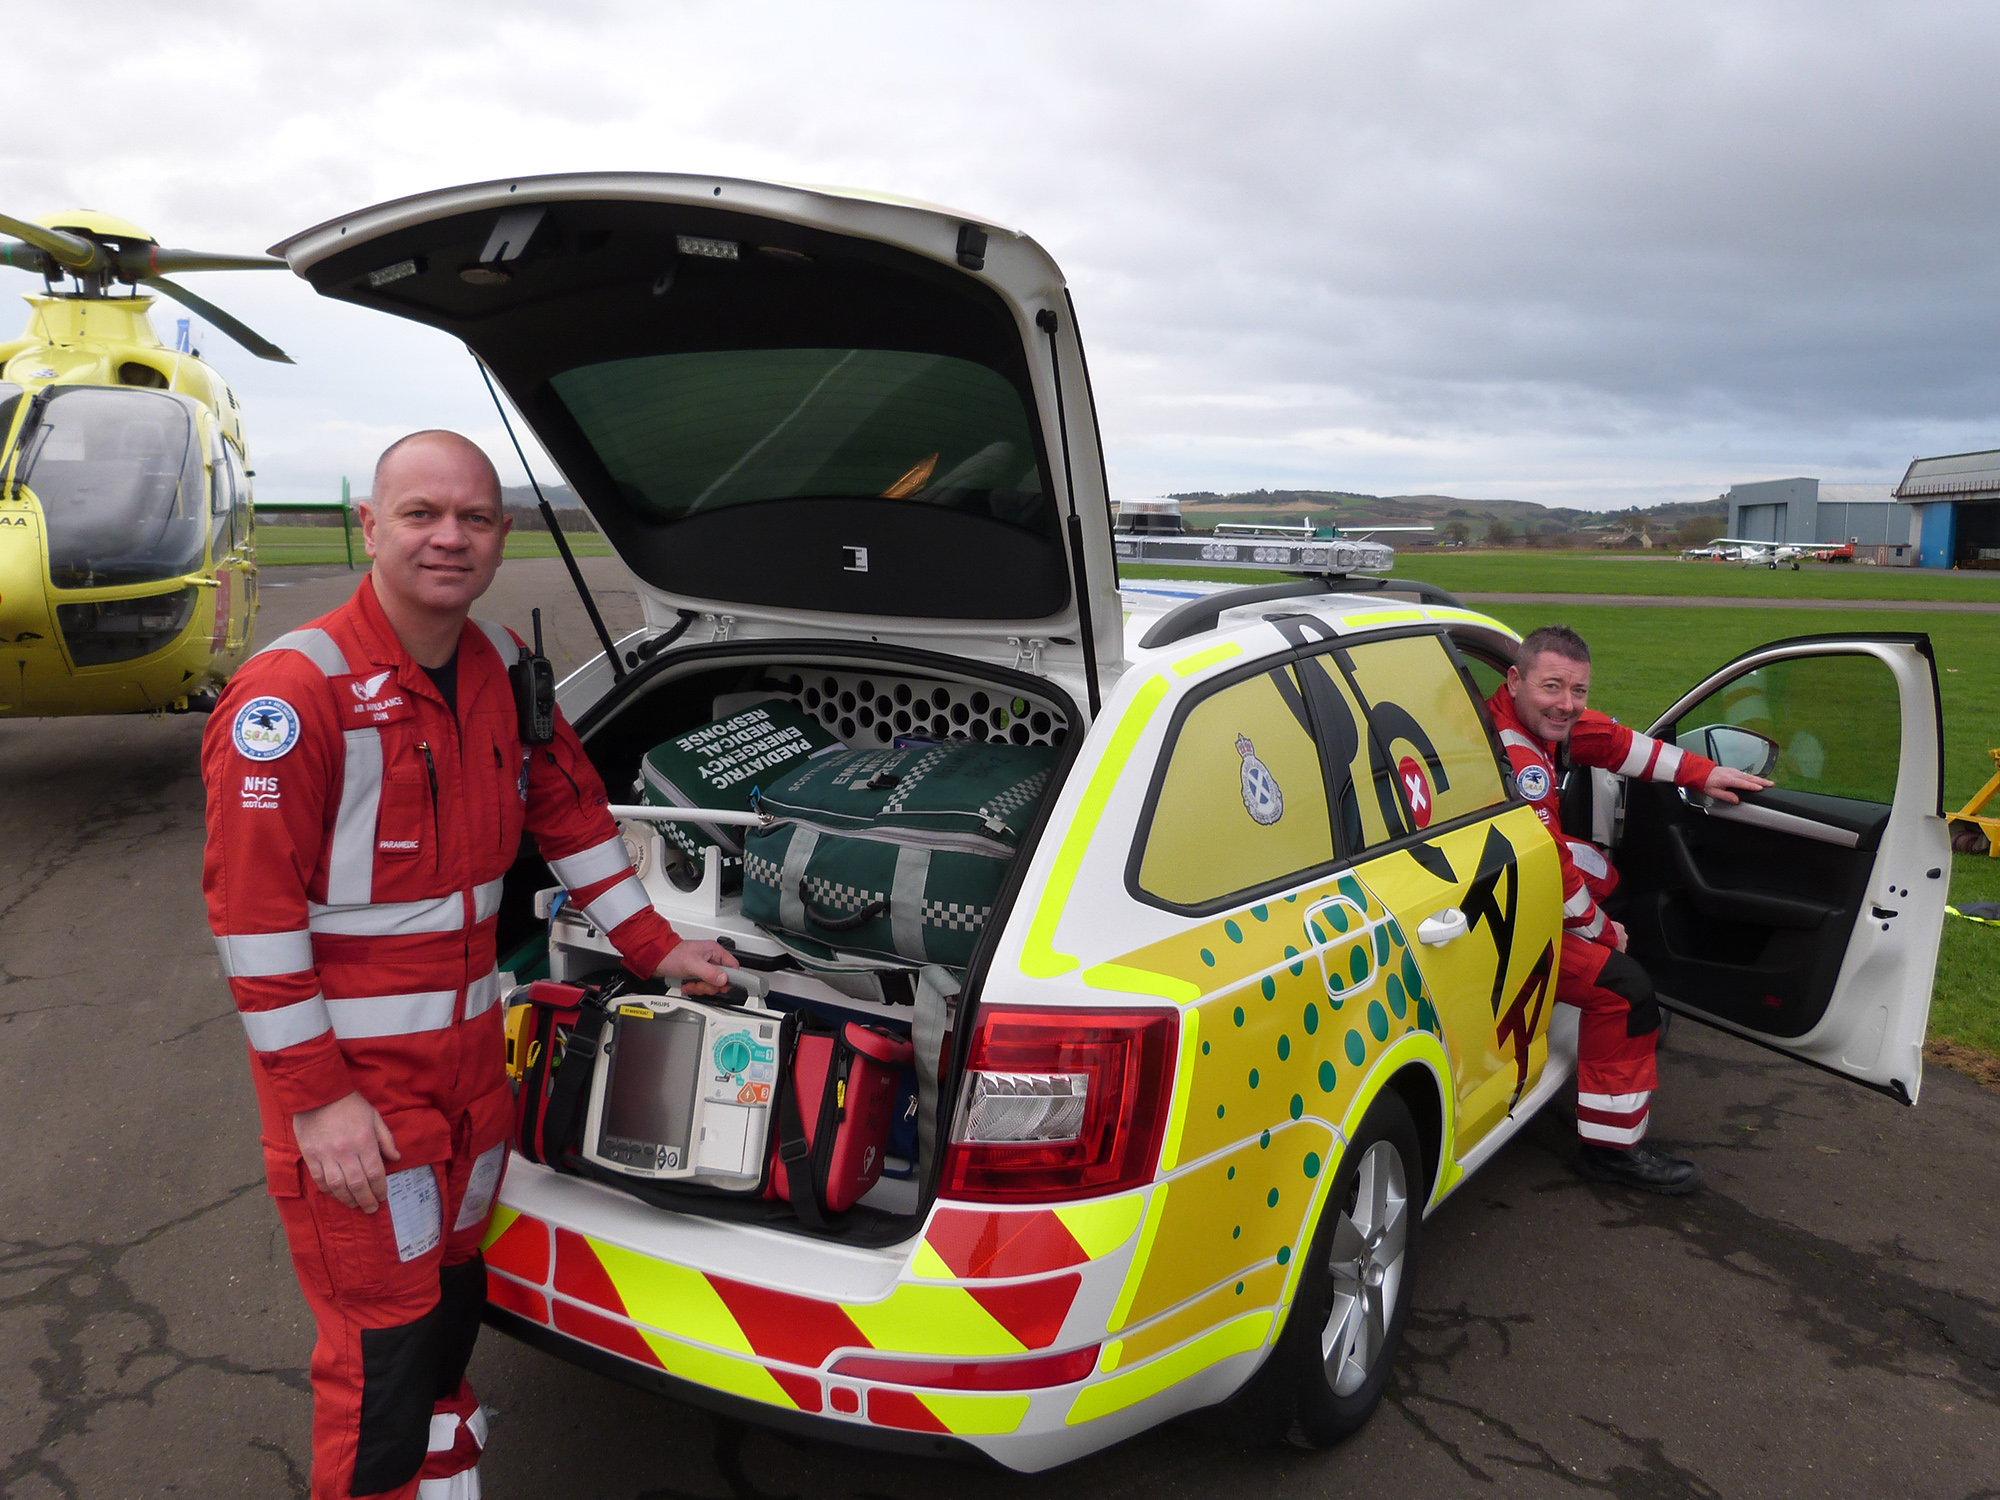 Scotland's Charity Air Ambulance was awarded £8,746 to purchase new equipment for the air ambulance to help save lives of those suffering an out-of-hospital cardiac arrest.